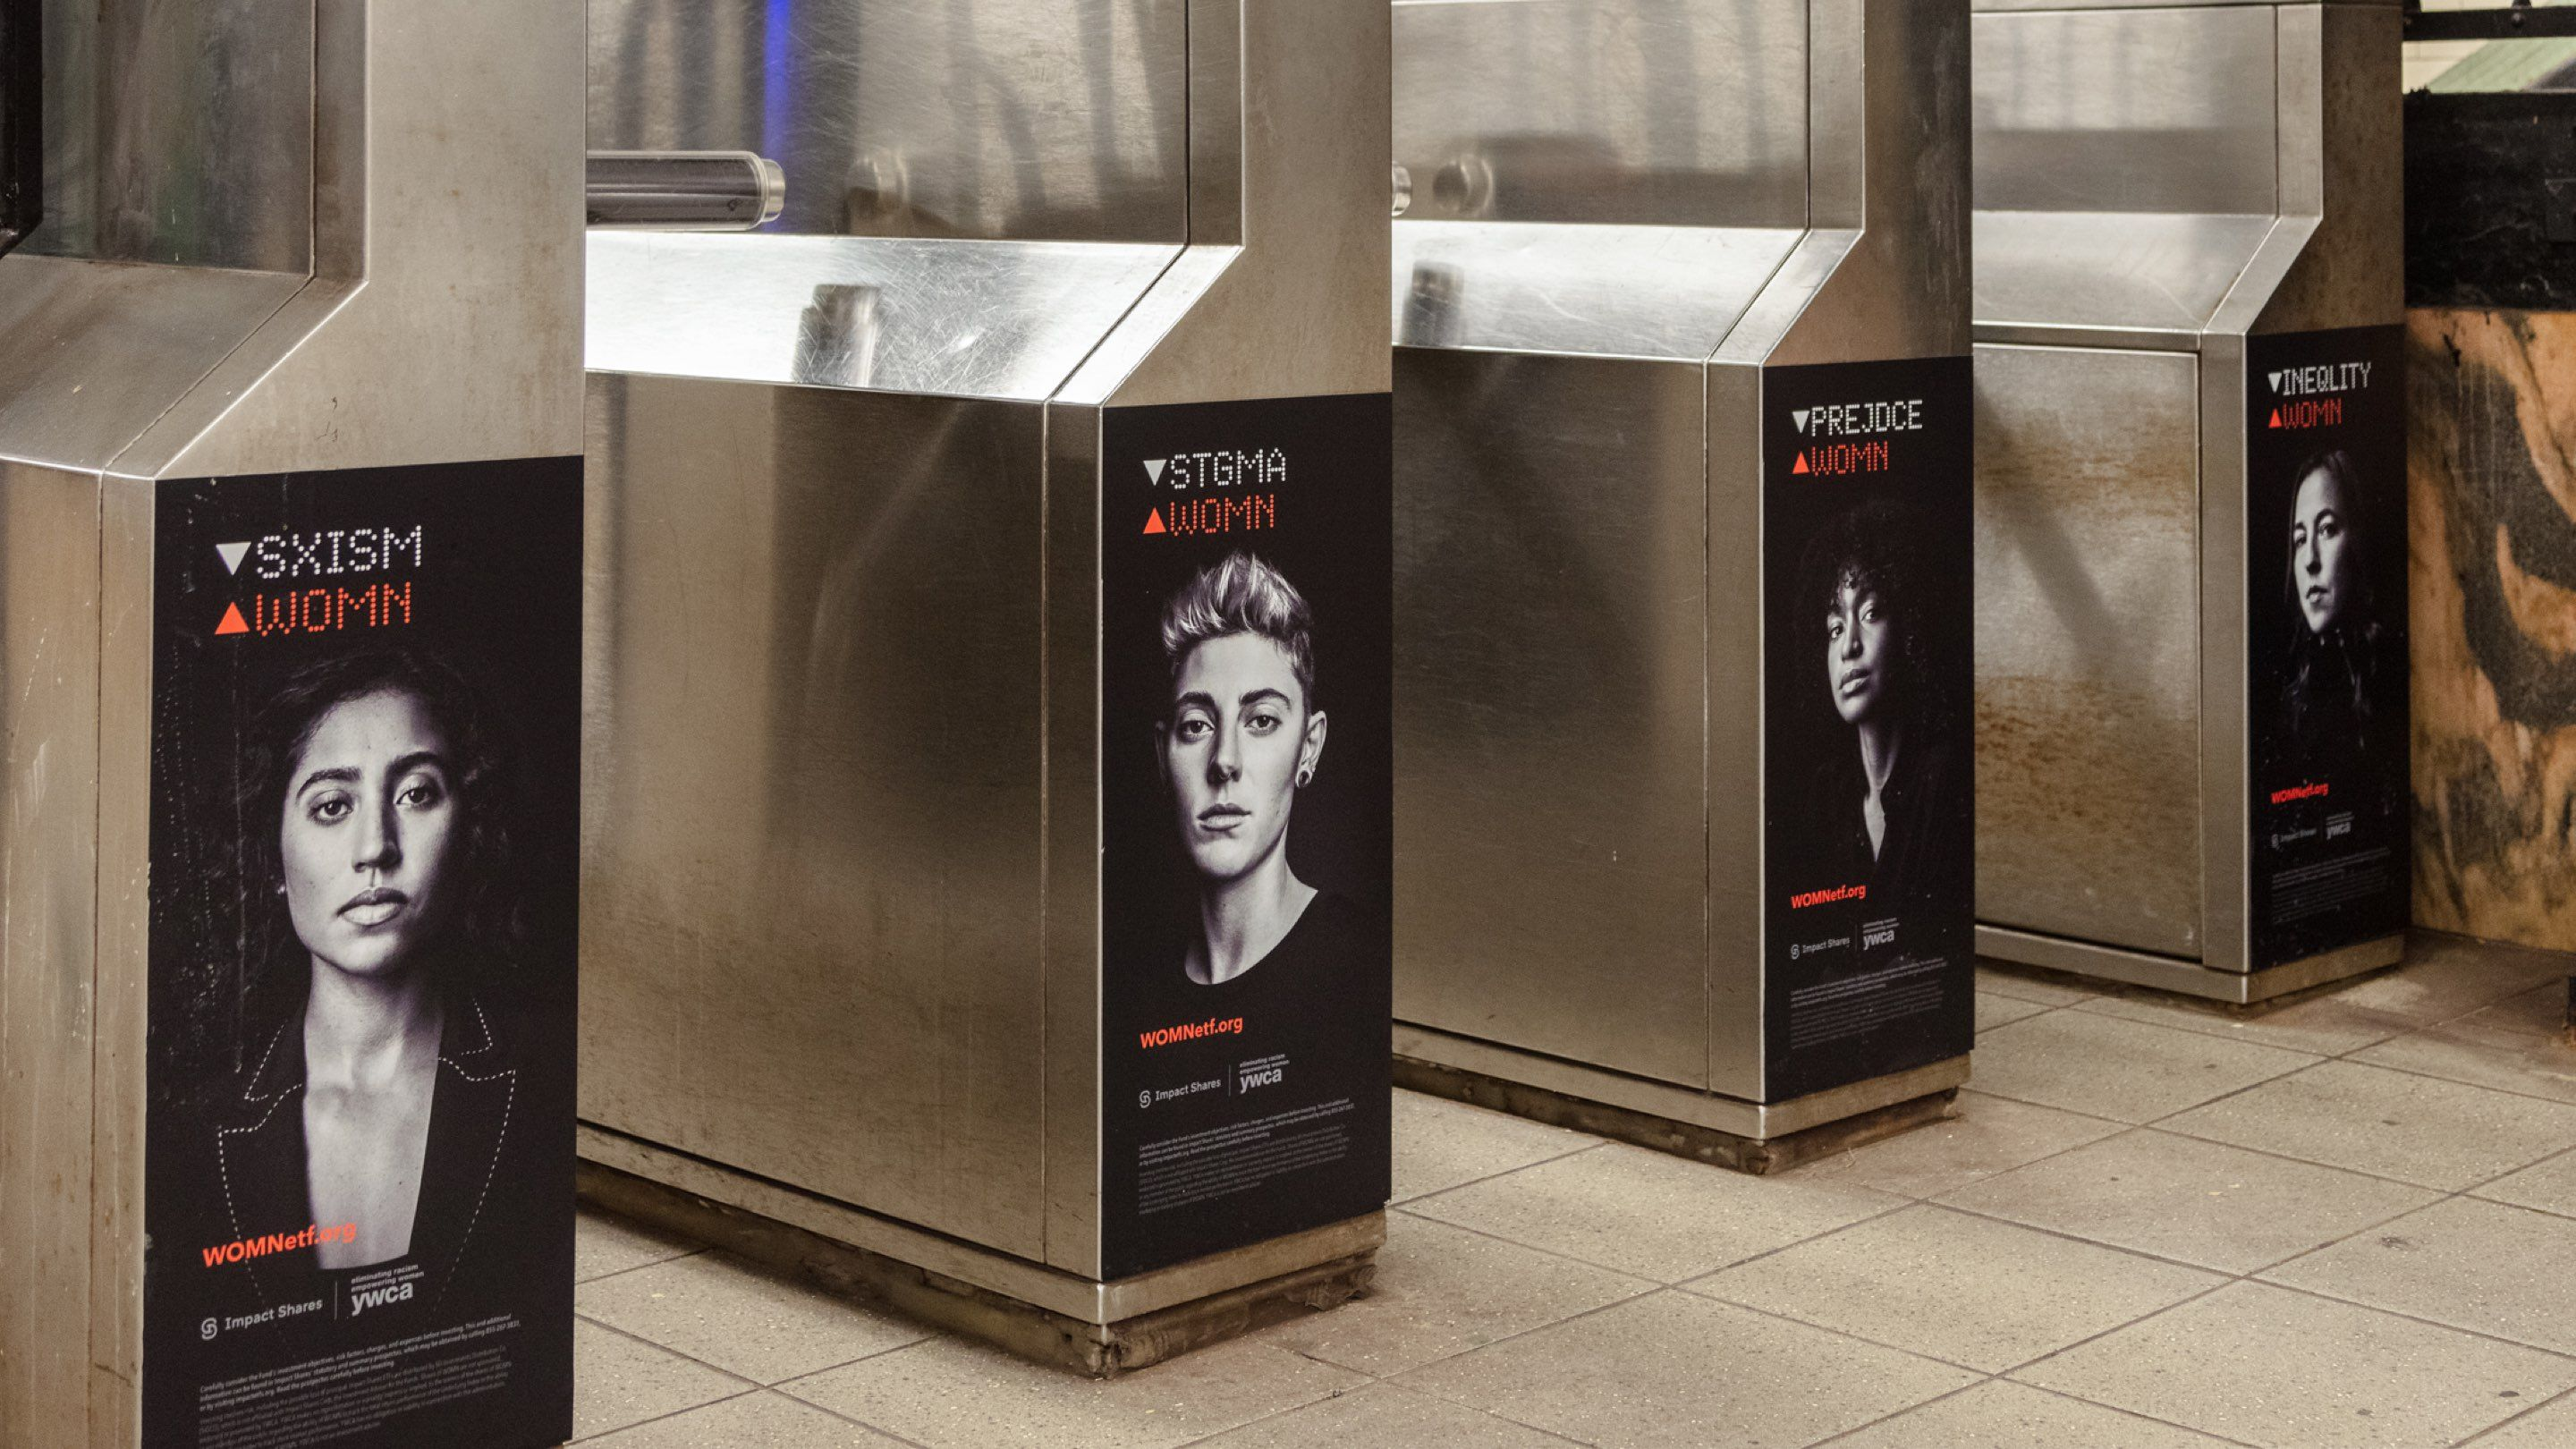 Subway turnstile covers for Impact Shares' WOMN campaign